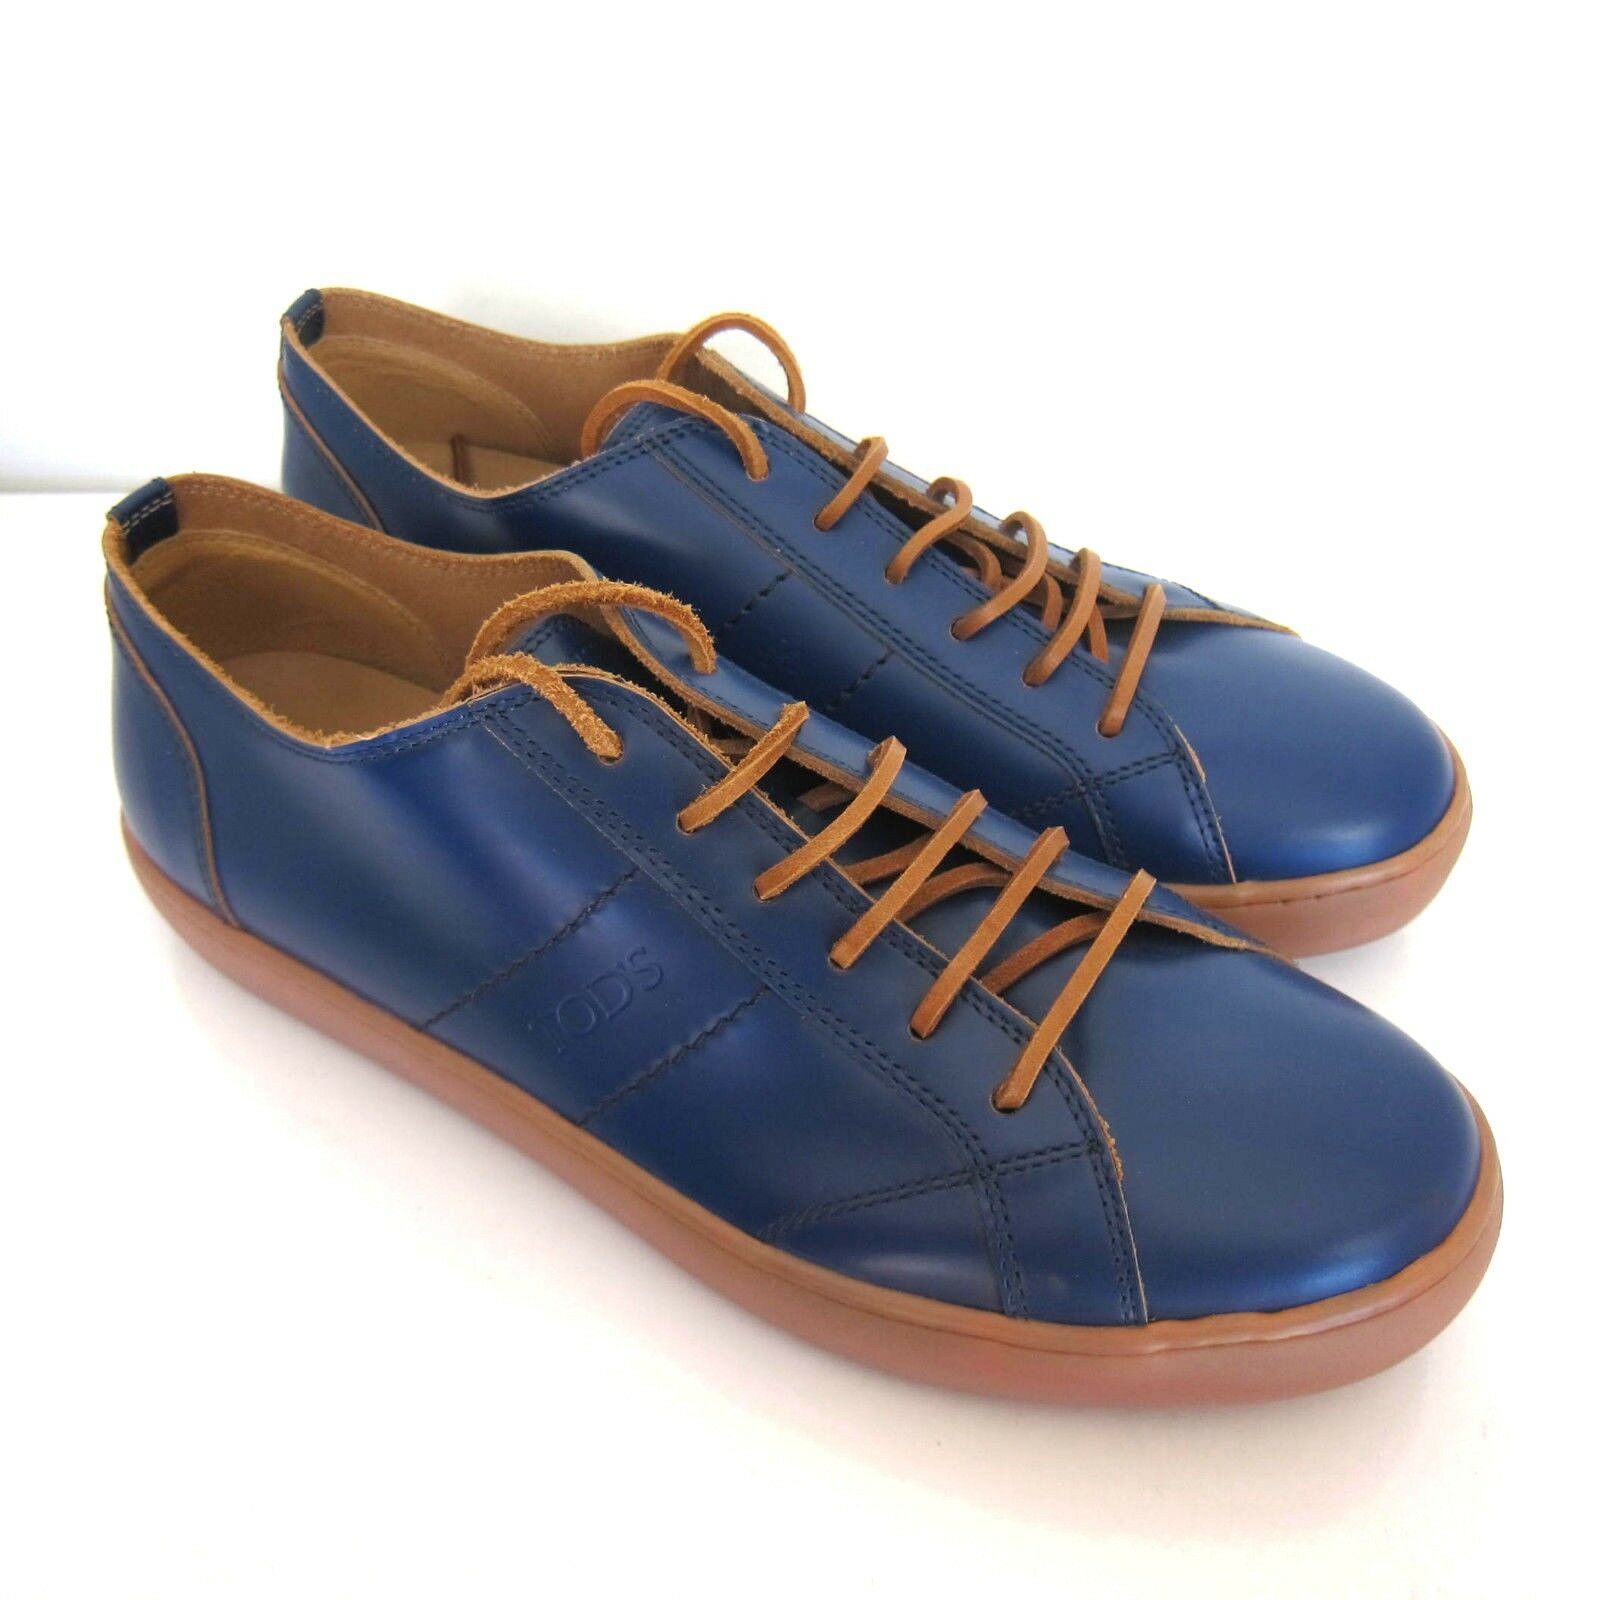 C-1589129 New Tods Sportivo Basso Pelle  Shoes Size   9.5 Marked 8.5